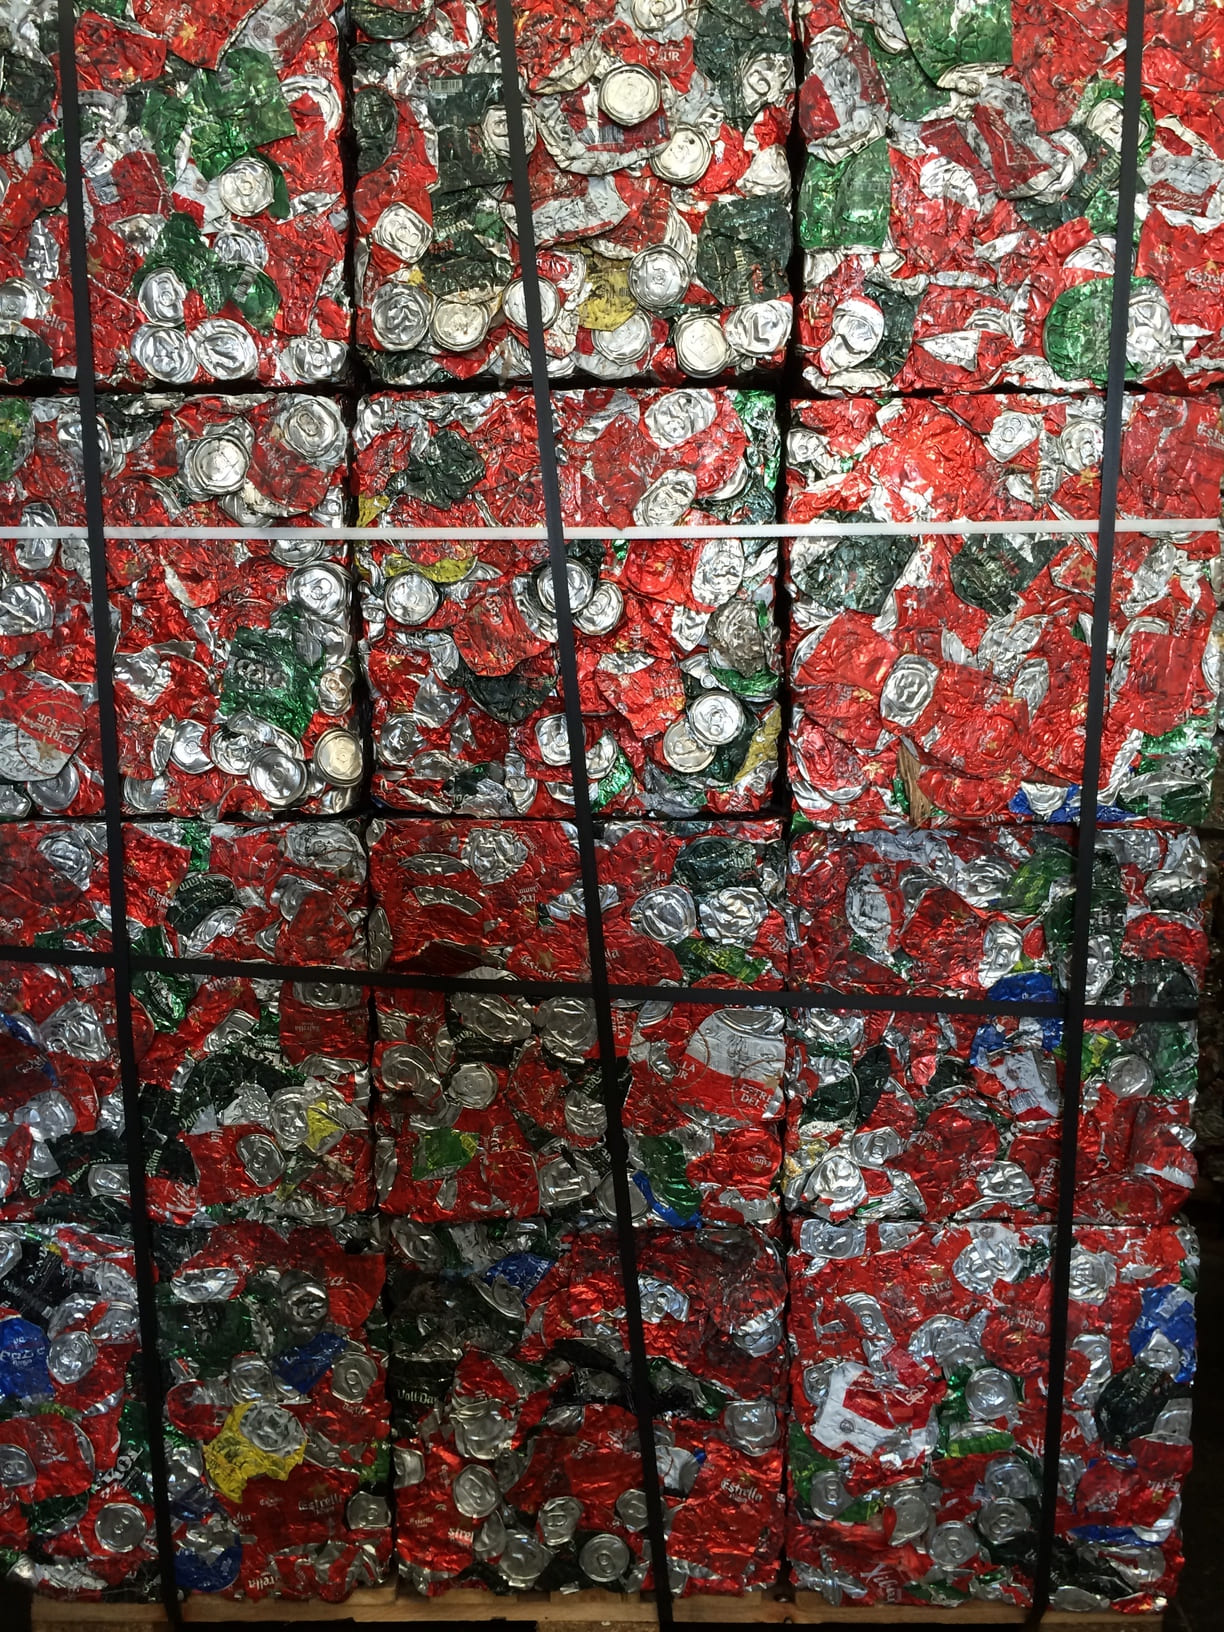 Latas / Cans